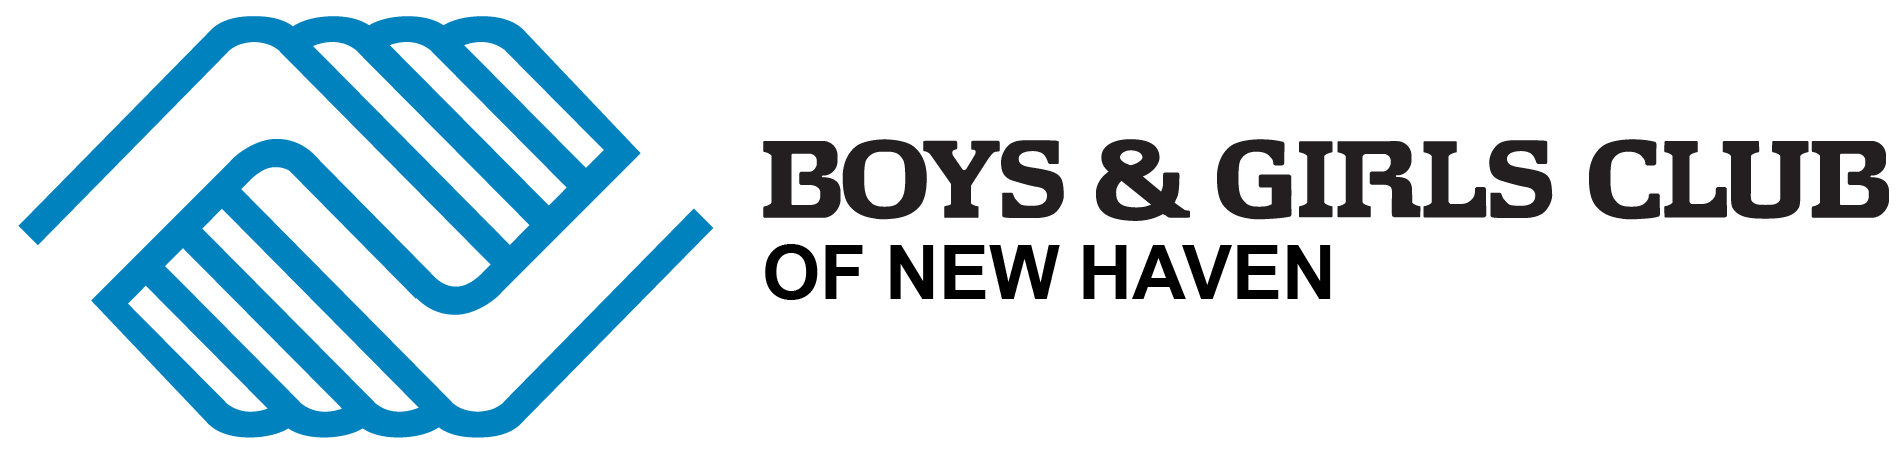 Boys and Girls Club of New Haven